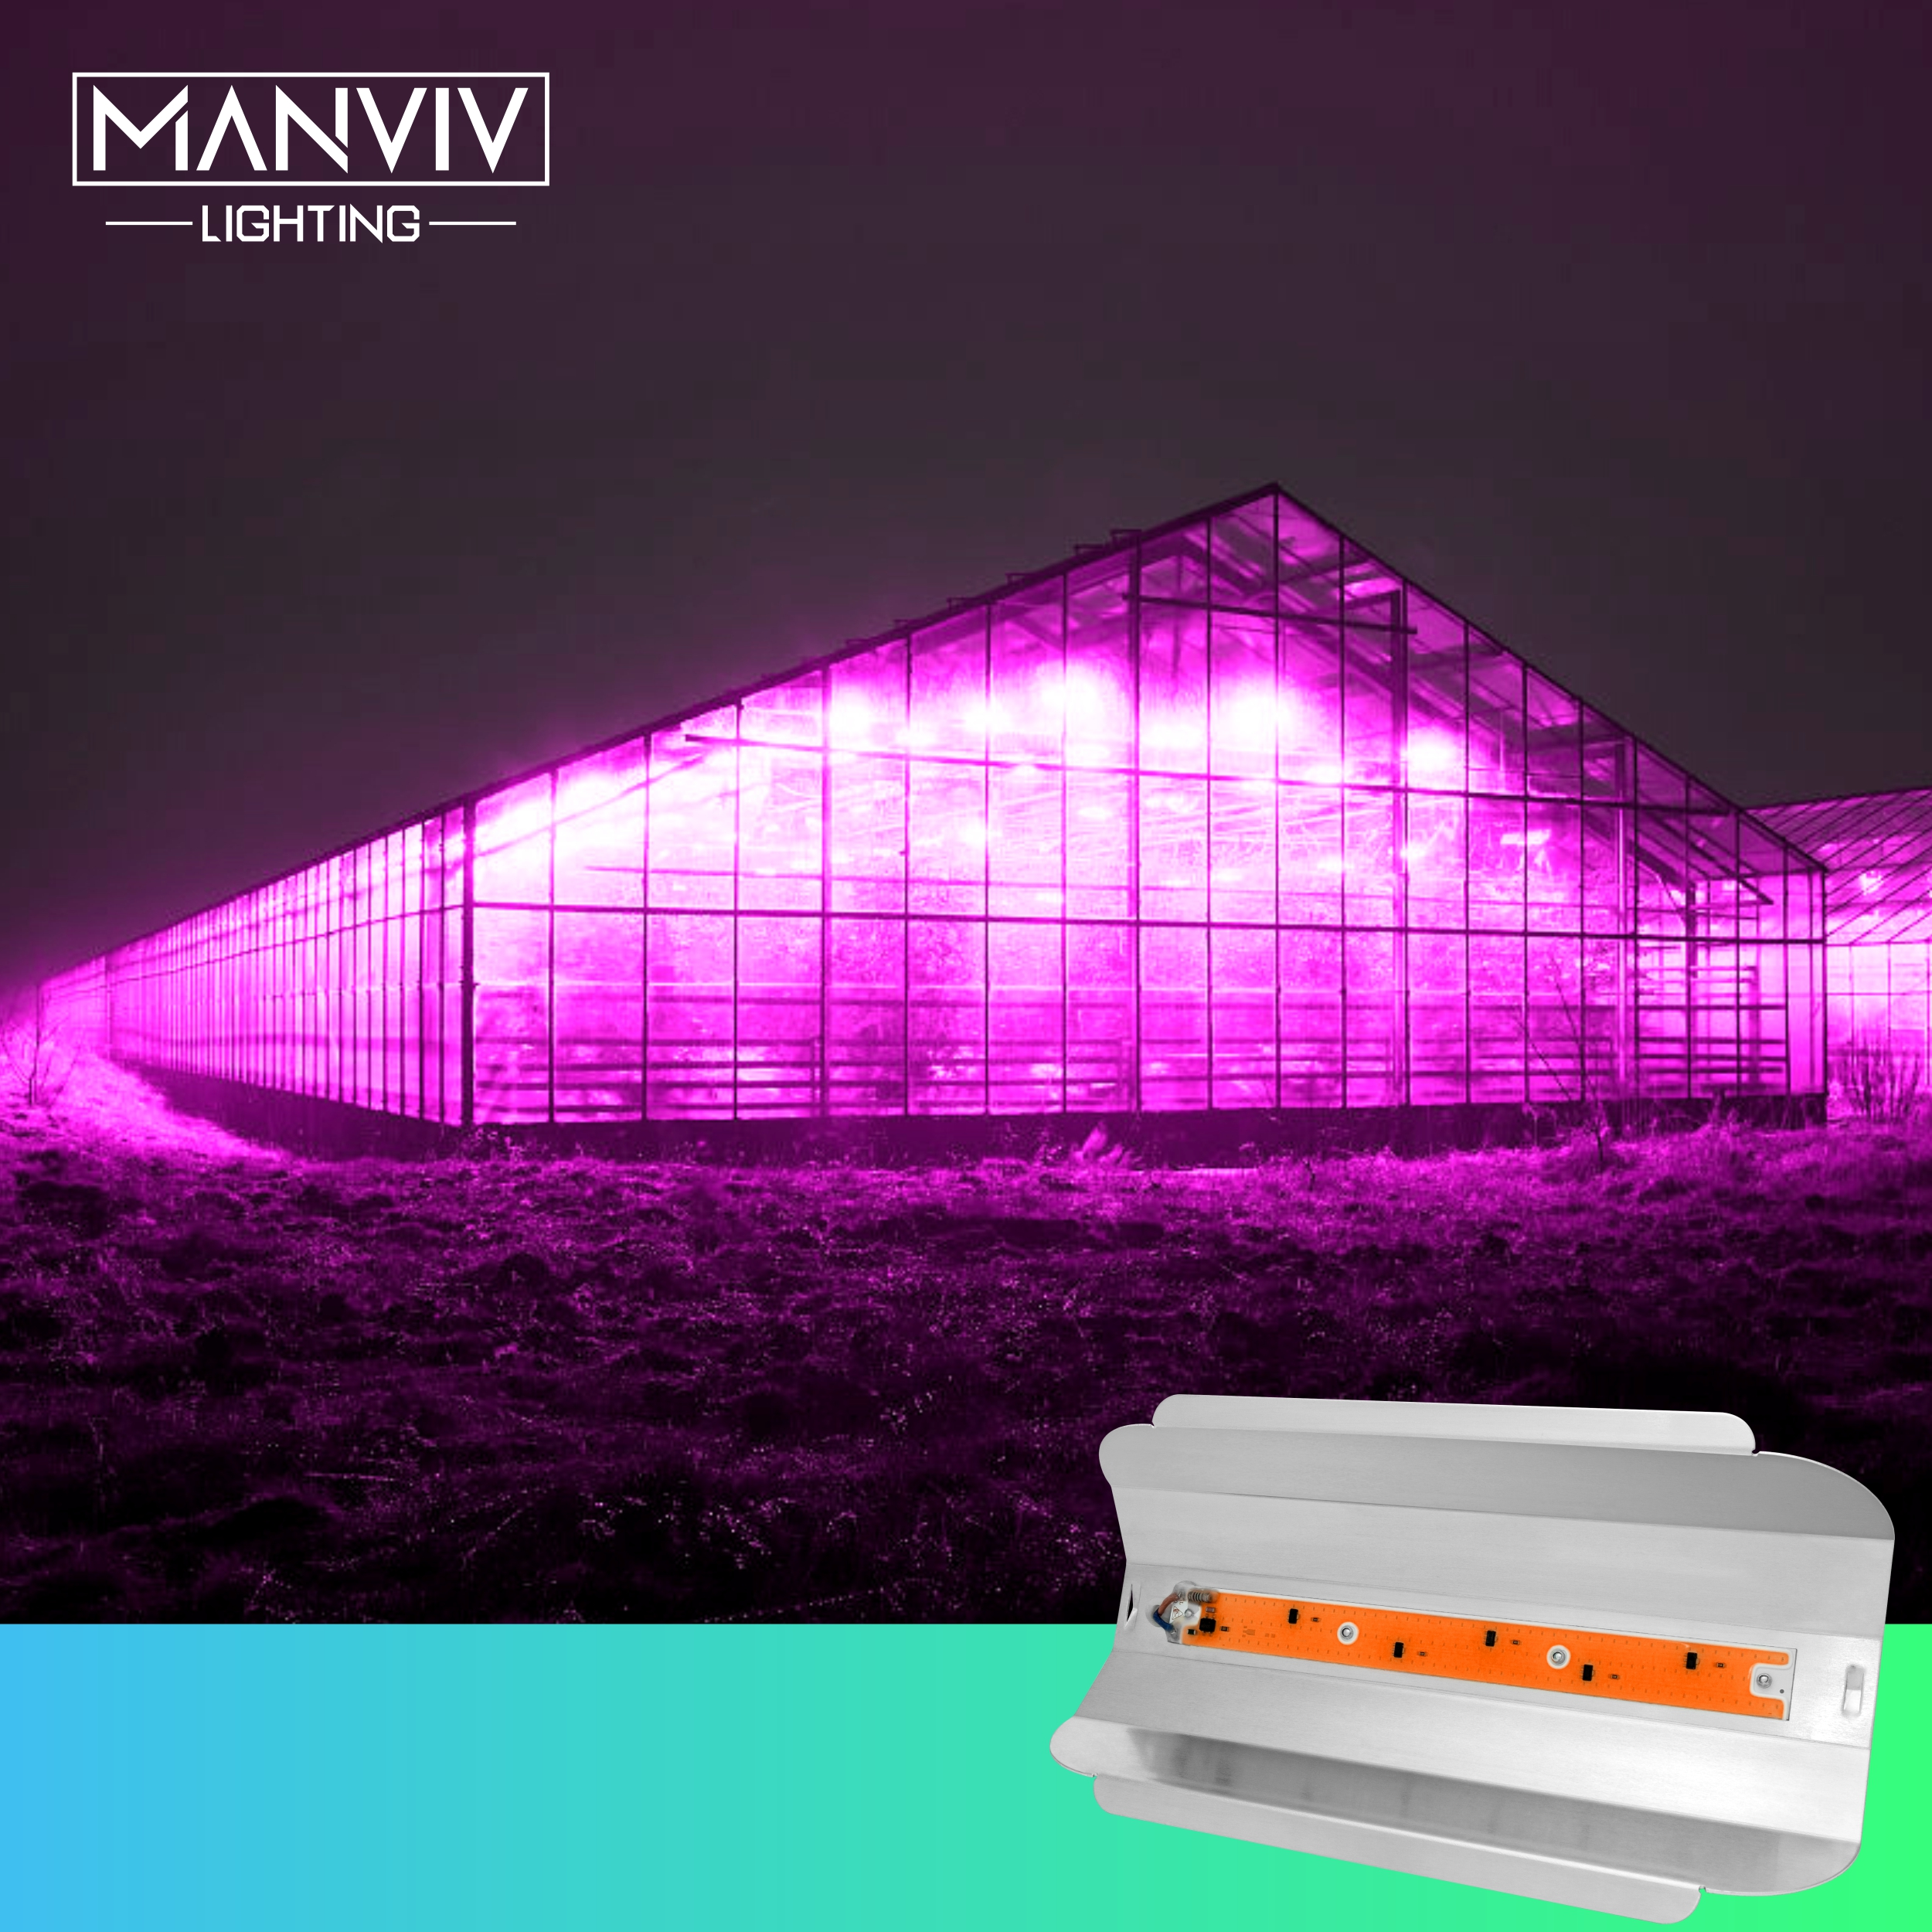 LED Grow Lighting Full Spectrum 30W 50W 80W Led Phyto Lamp IP65 220V Fitolamp For Indoor Greenhouse Plant Growth Light Fito Lamp